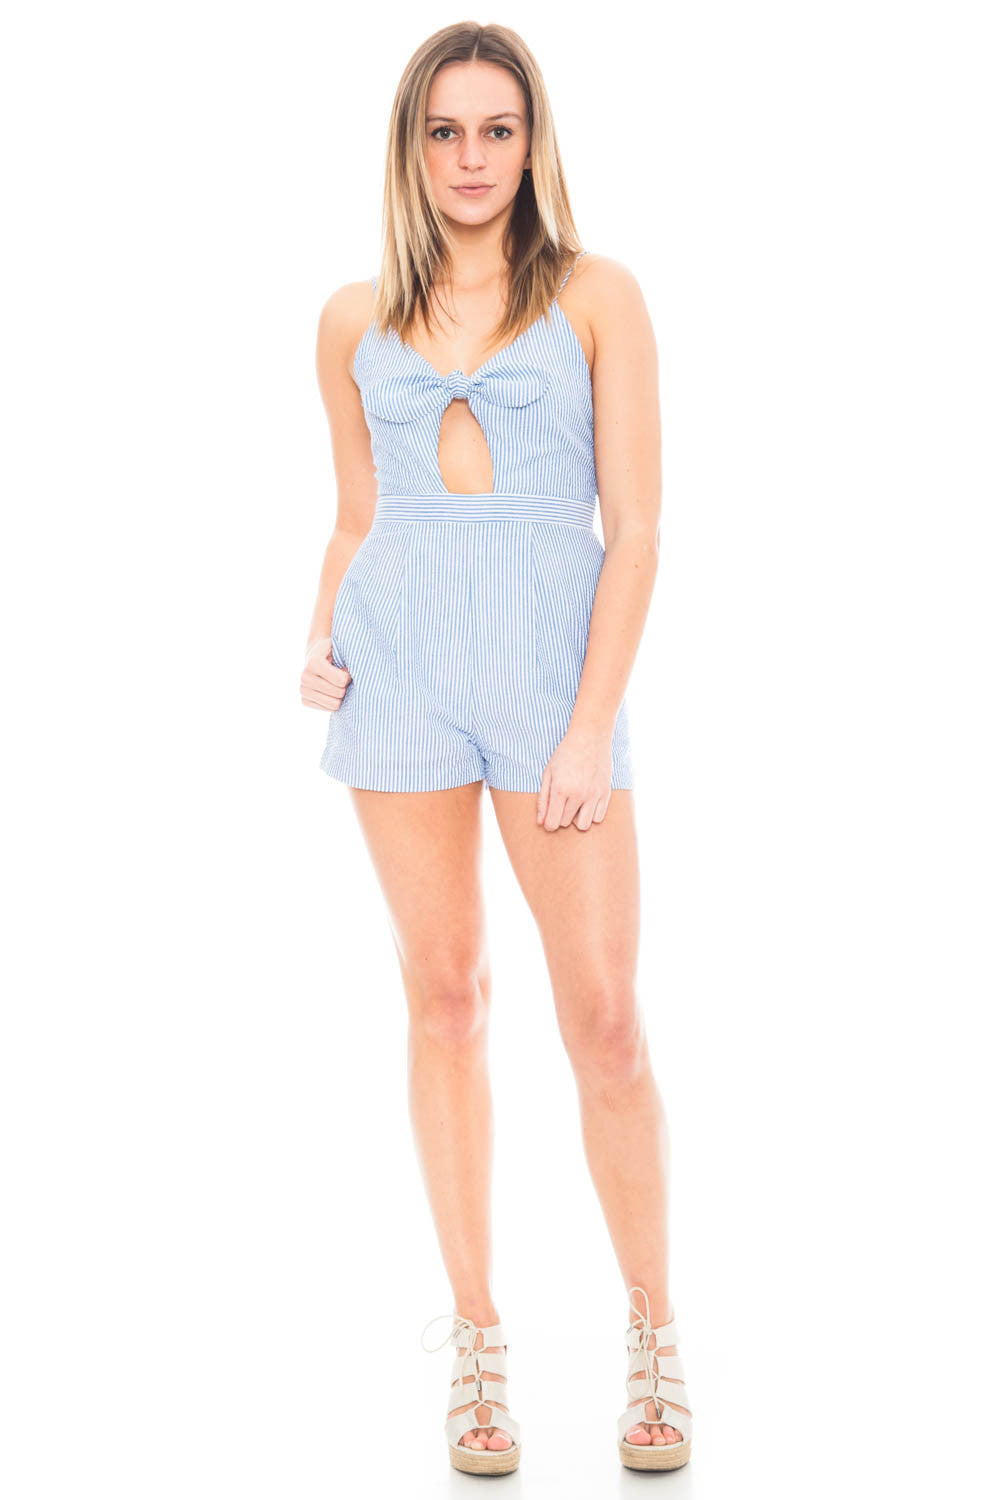 Romper - Seersucker Romper with Bow Front Tie Everly